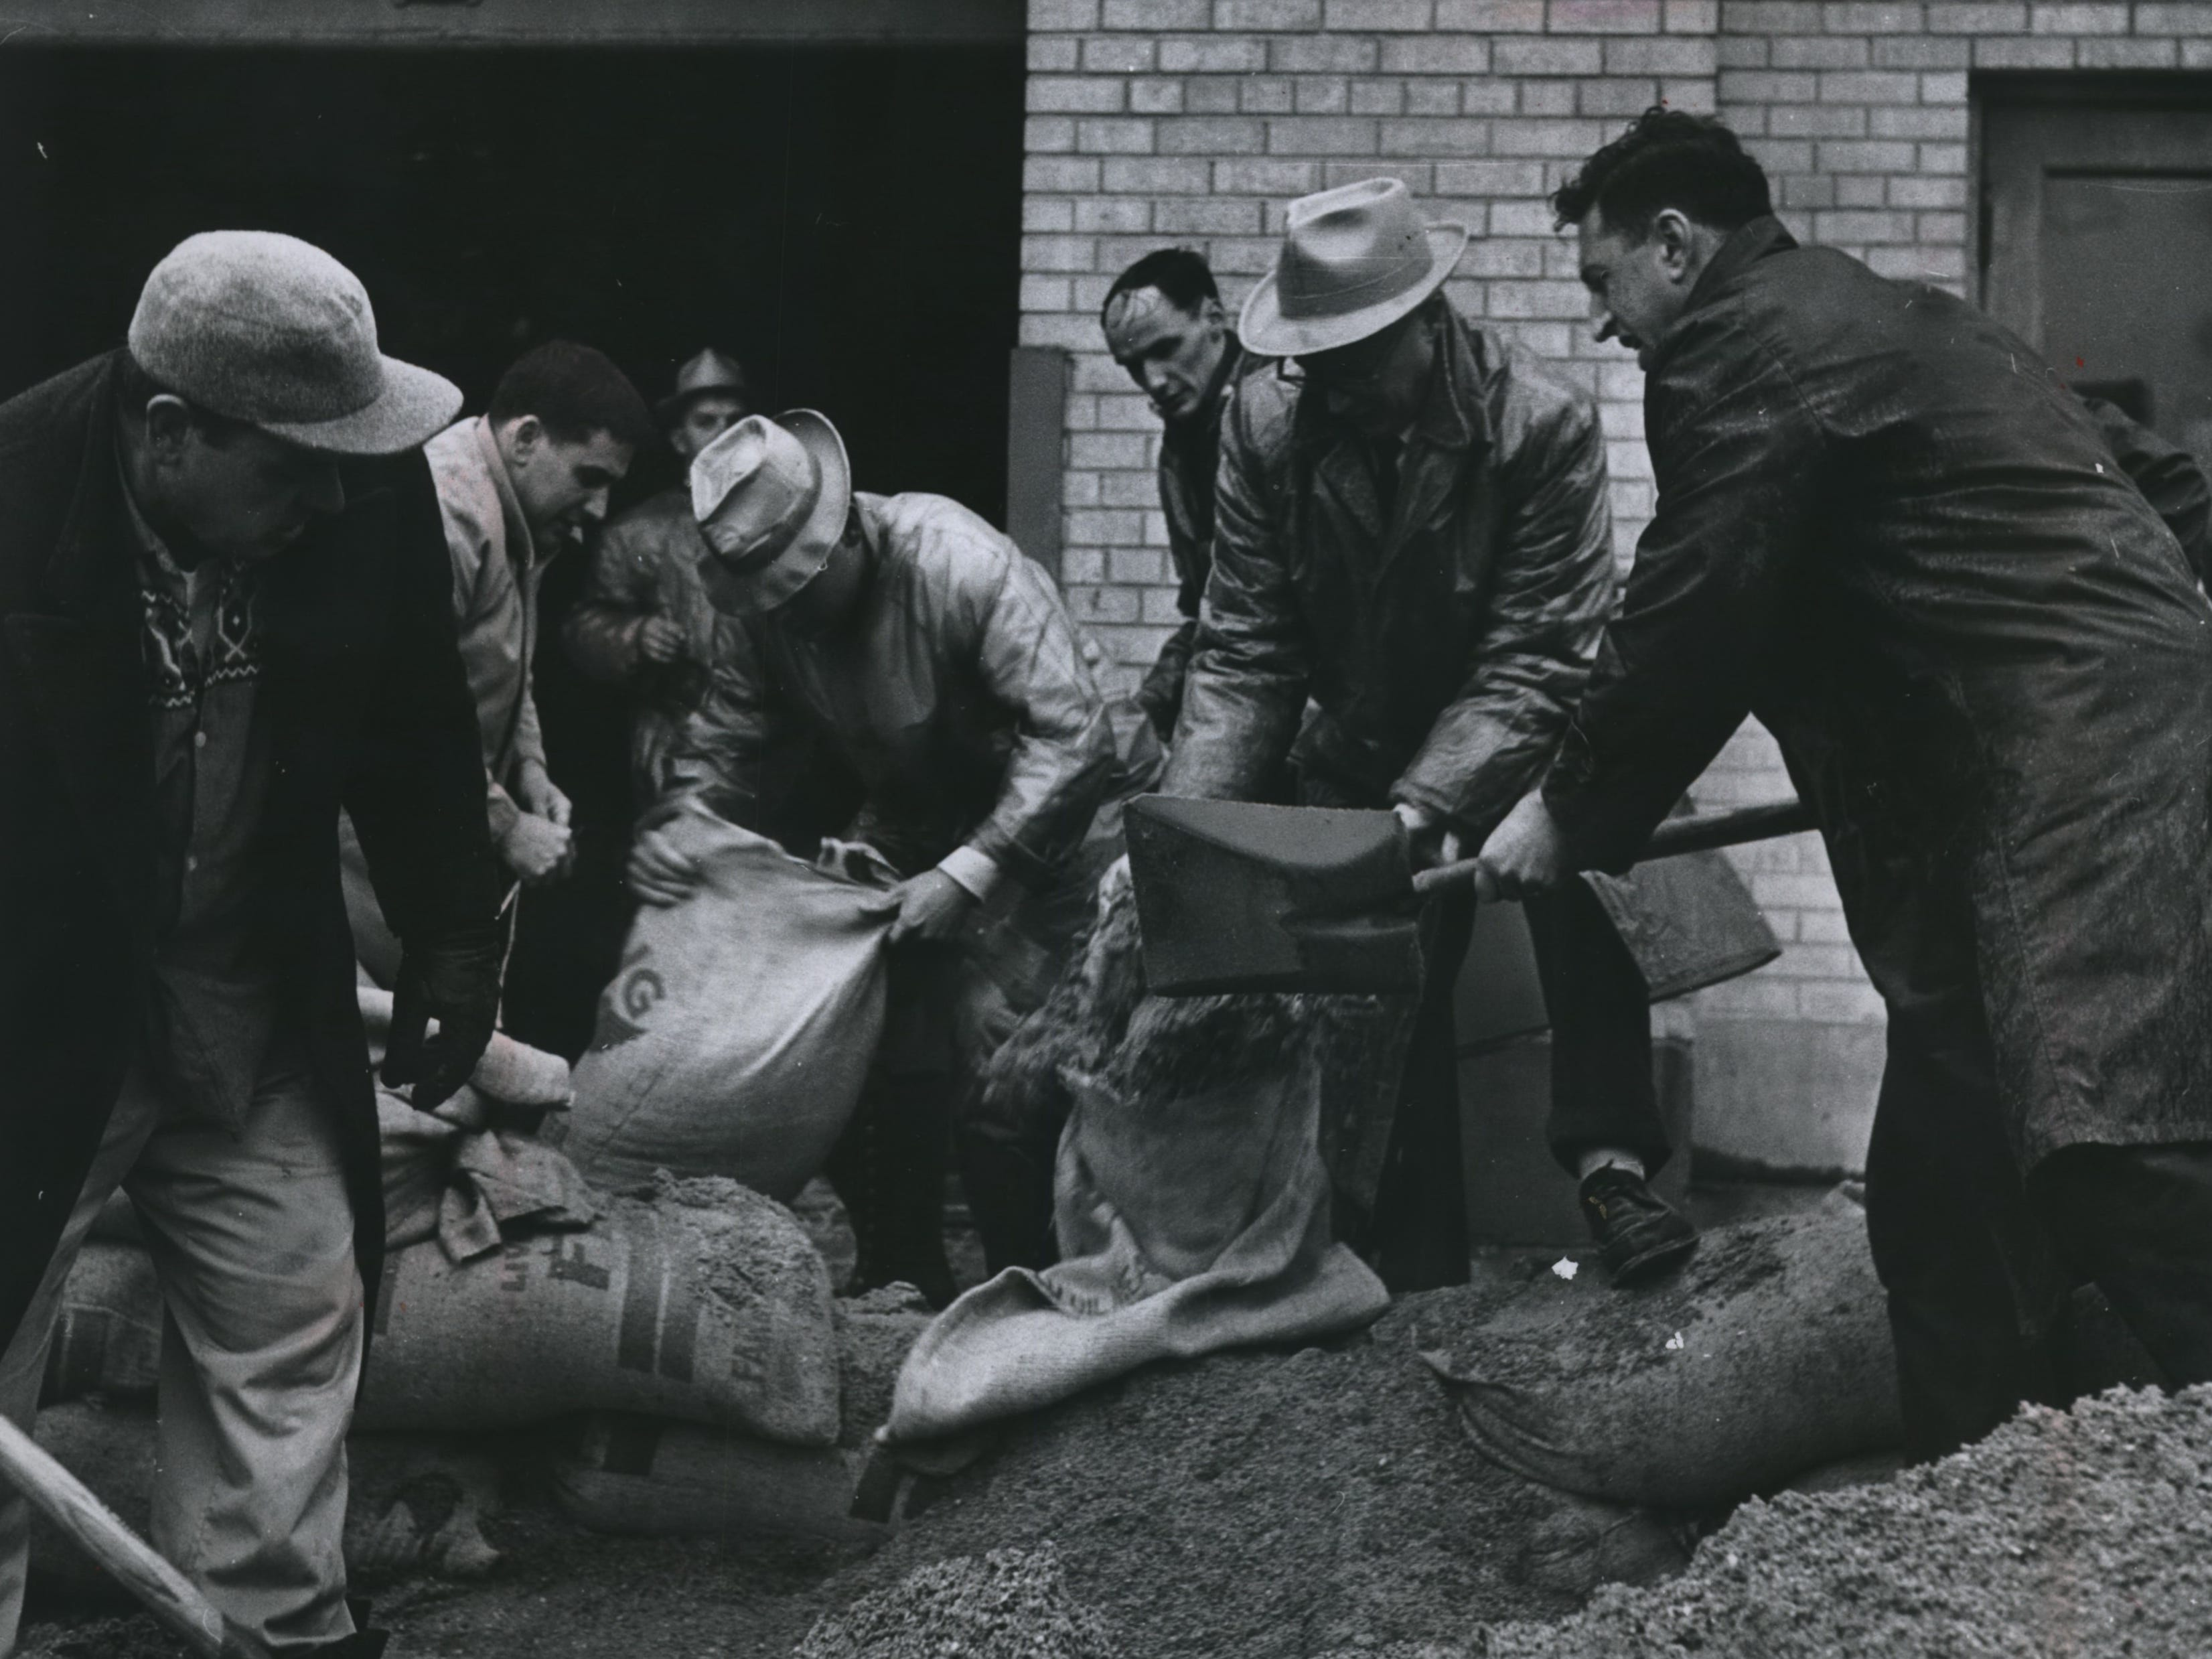 Employees of the Sears, Roebuck & Co. store on South Barstow Street in downtown Waukesha make a sandbag barricade to protect the store from the overflowing Fox River on March 30, 1960. This photo was published in the Milwaukee Journal on March 31, 1960.